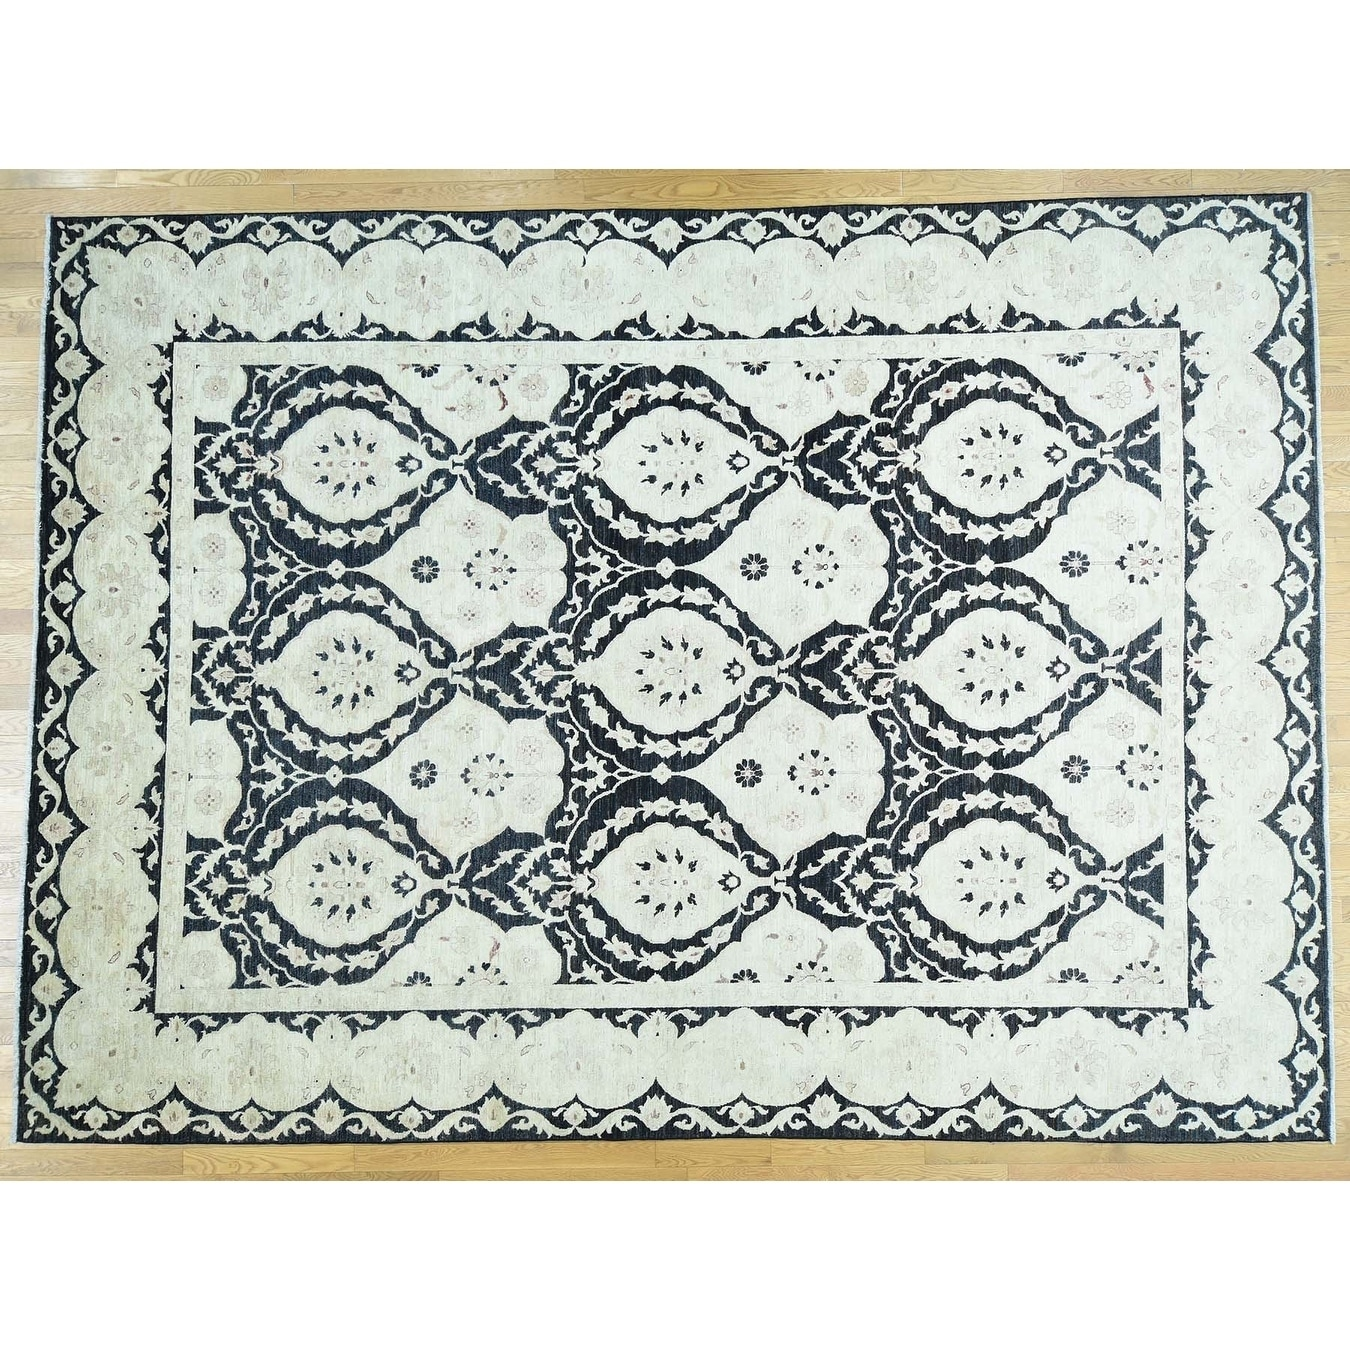 Hand Knotted Black Oushak And Peshawar with Wool Oriental Rug - 10 x 138